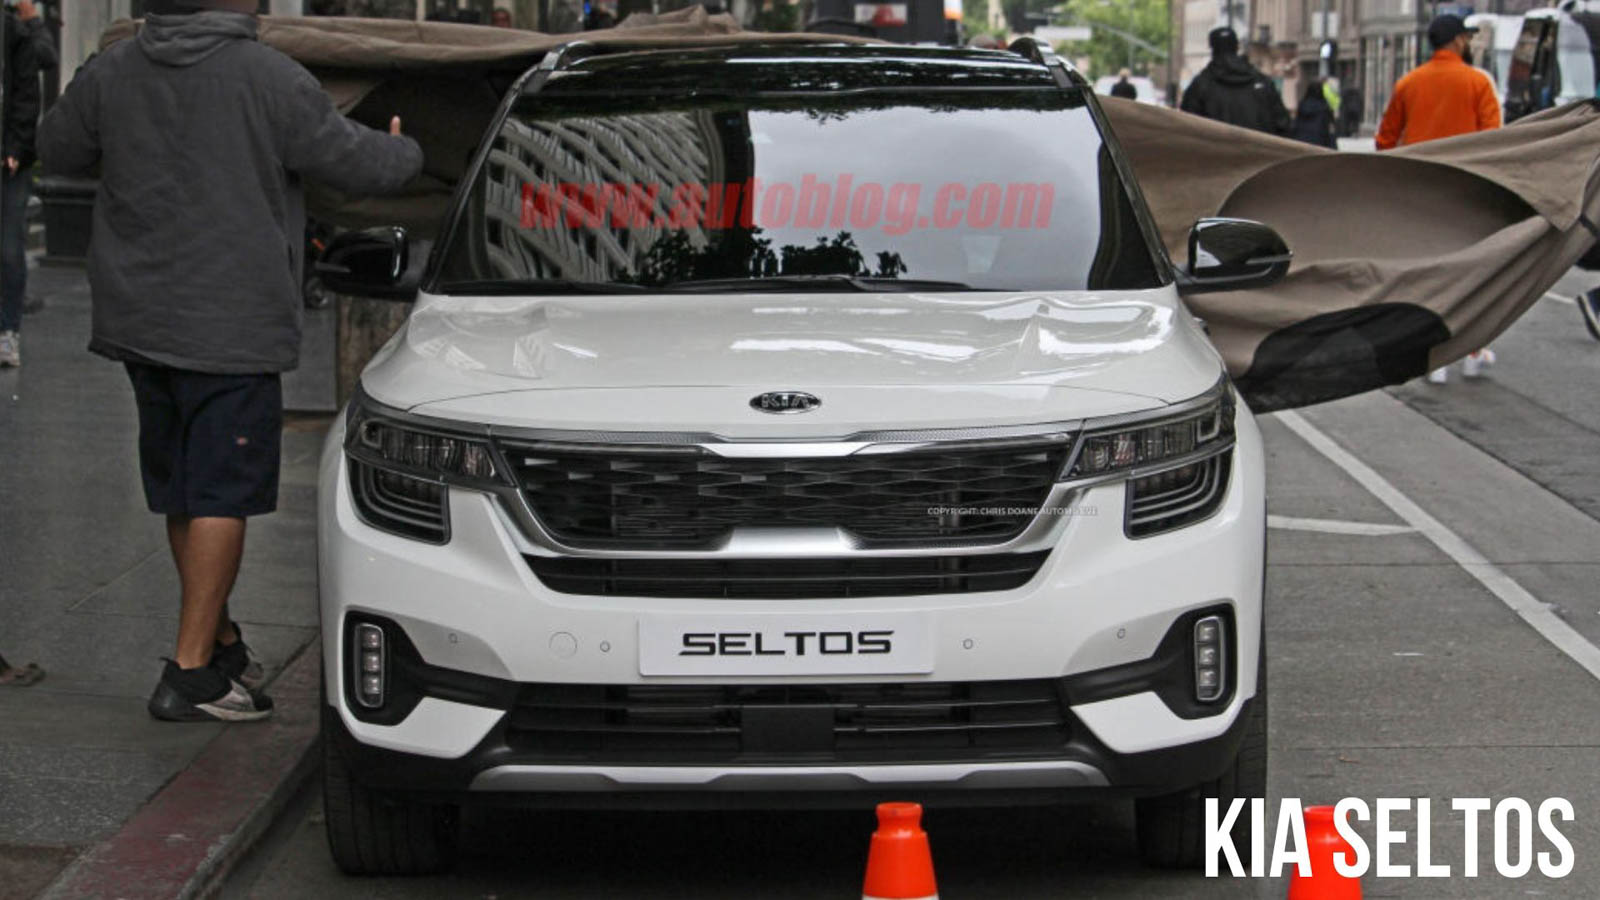 Kia Seltos Is The Name Of The Production Spec SP Concept